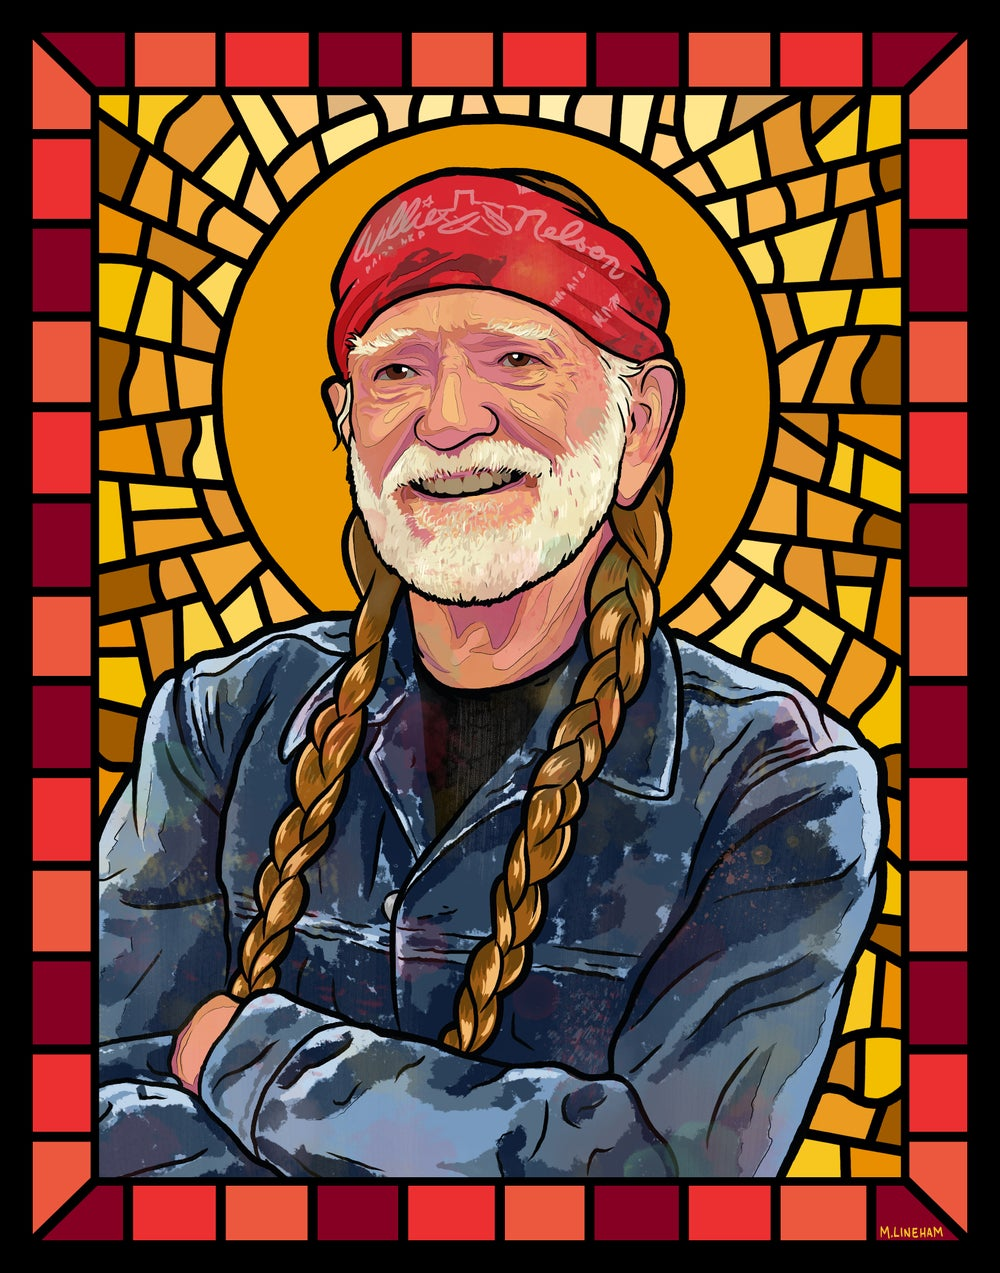 Saint Willie Nelson